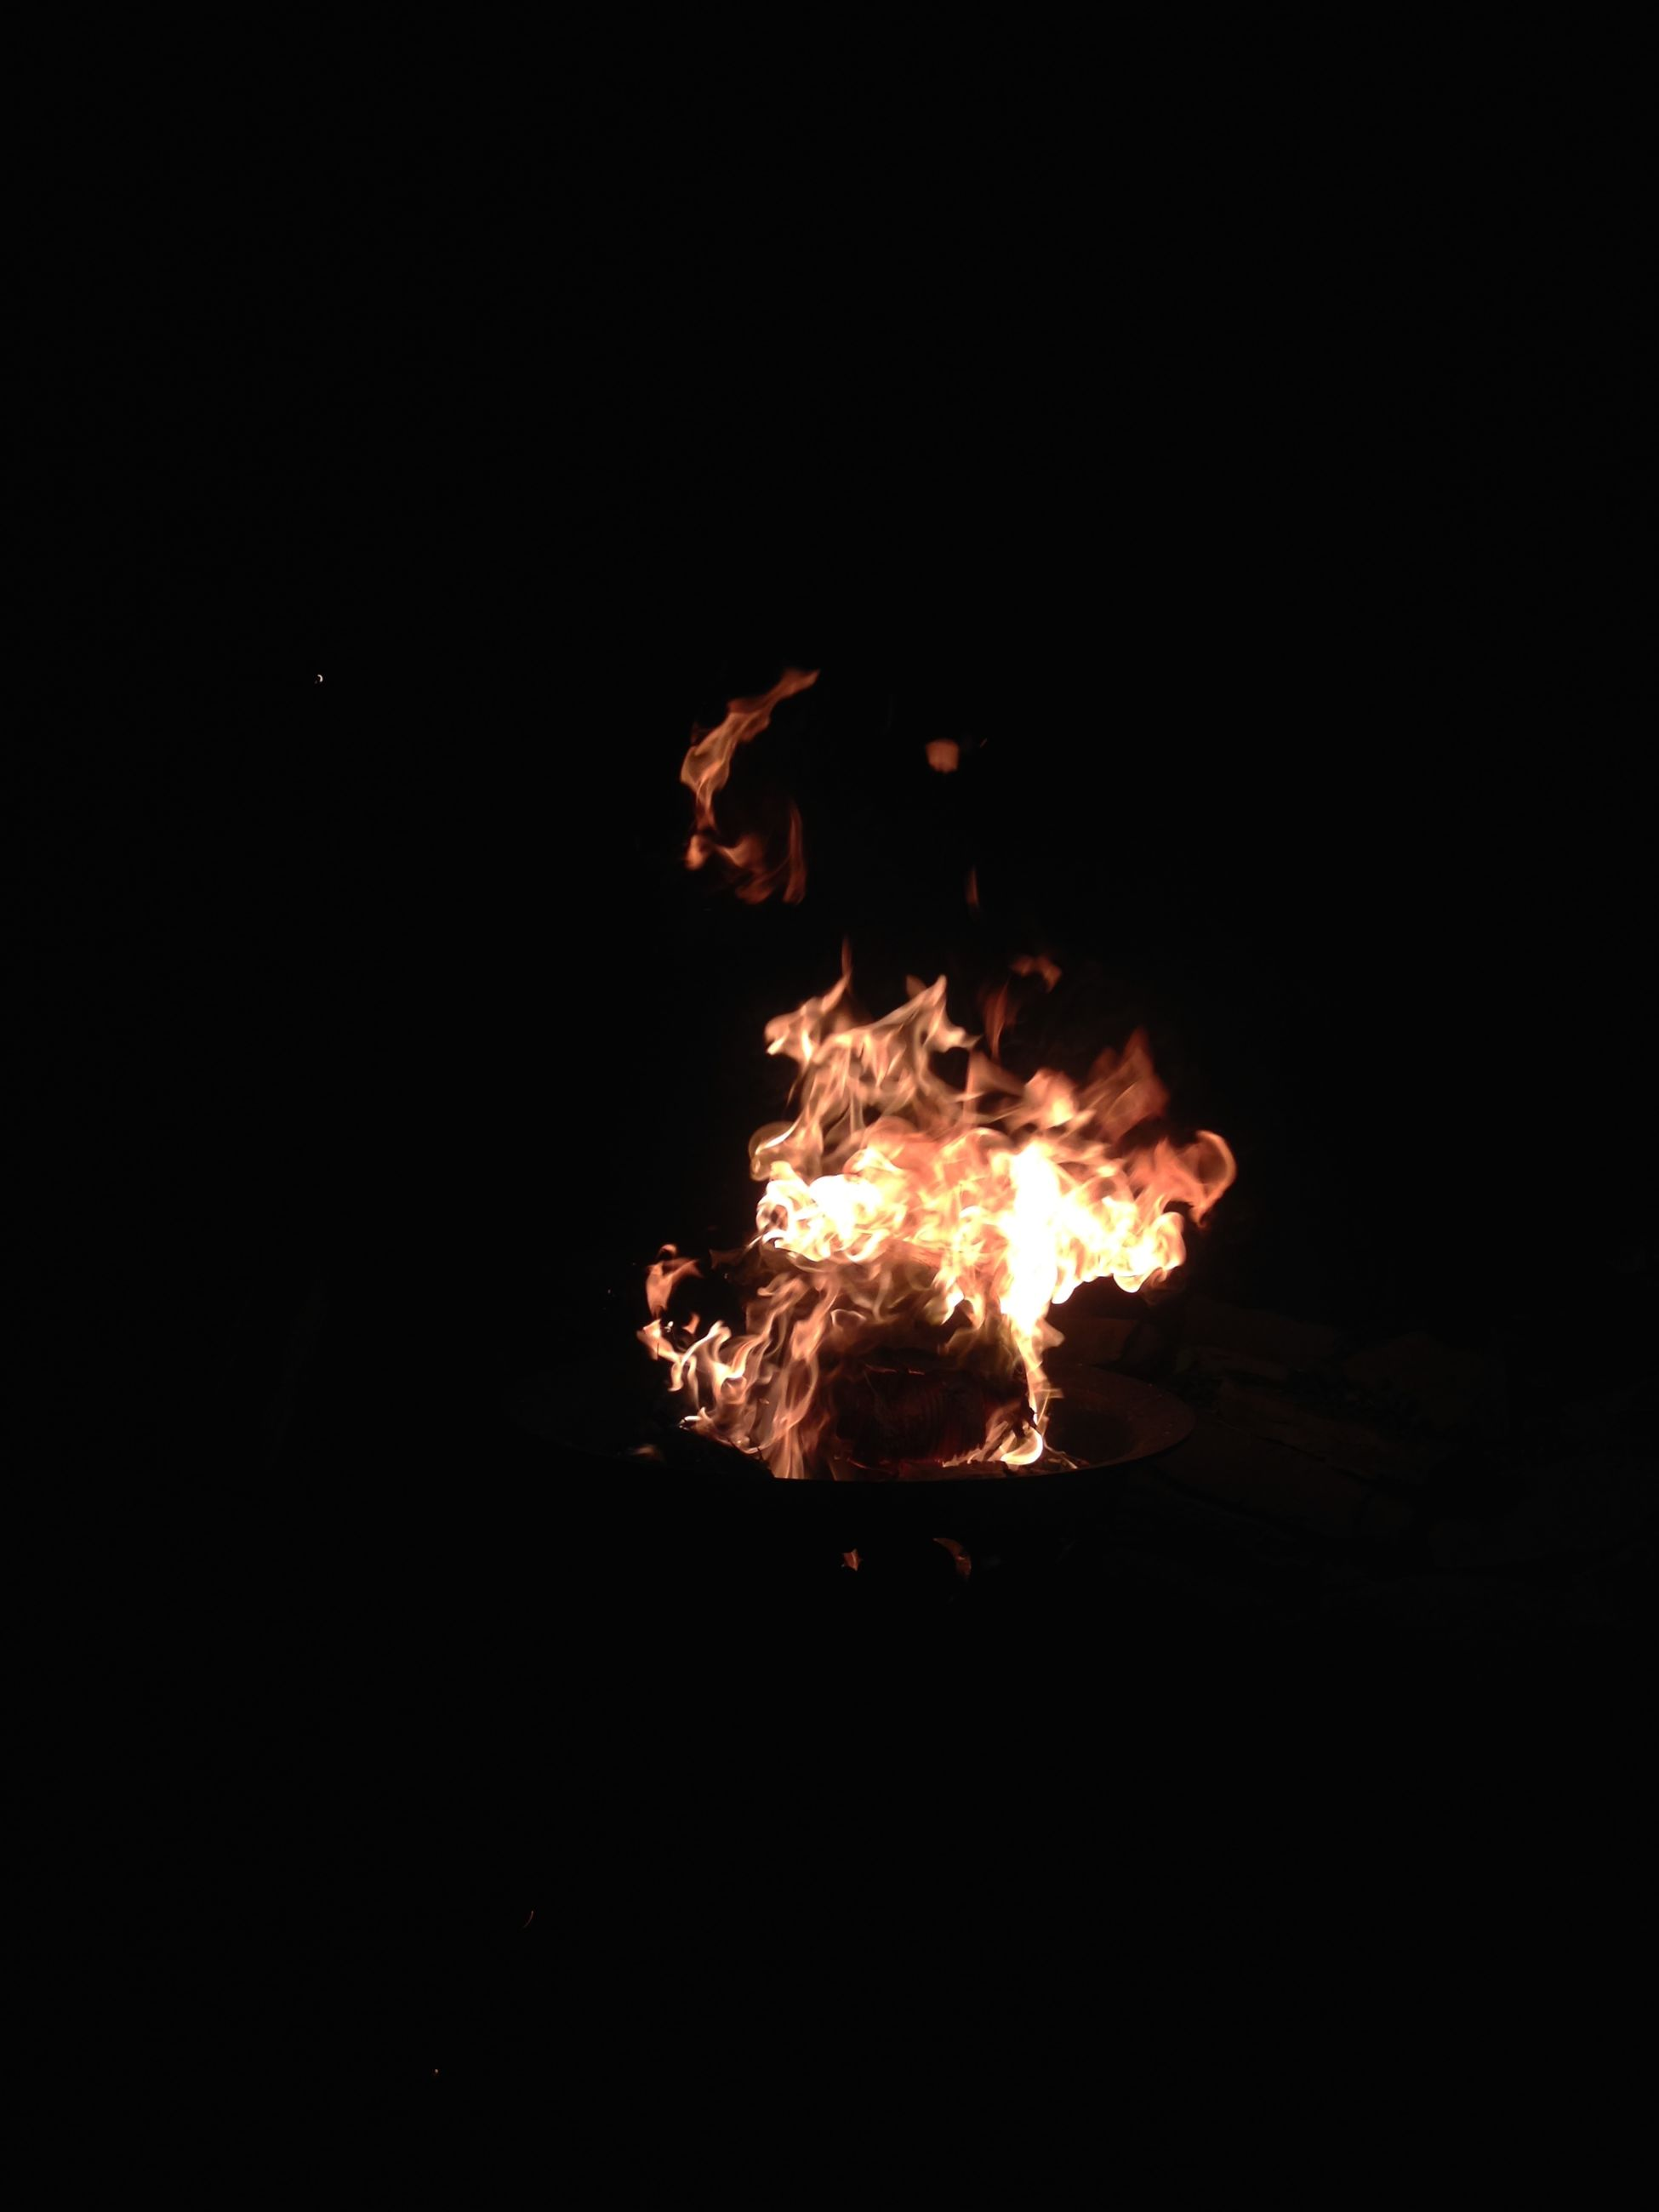 Lit bonfire in forest at night